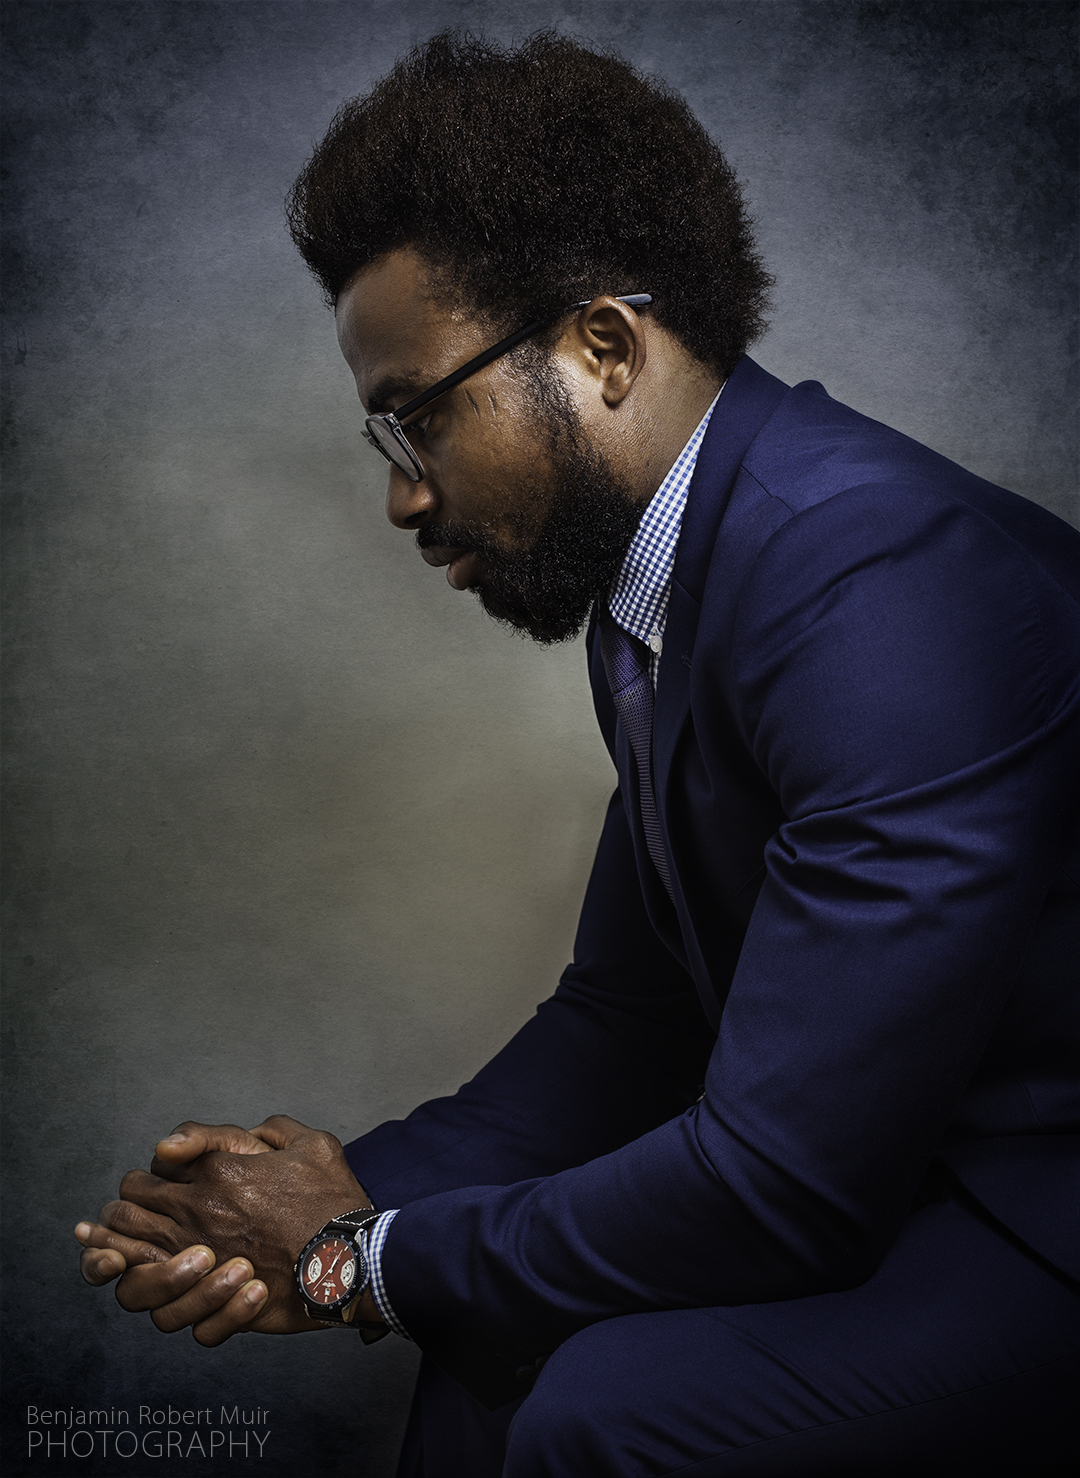 Bristol Fashion Photography -  Black Male Model shoot wearing a Smart Navy Suit shot at Bristol based photography studio